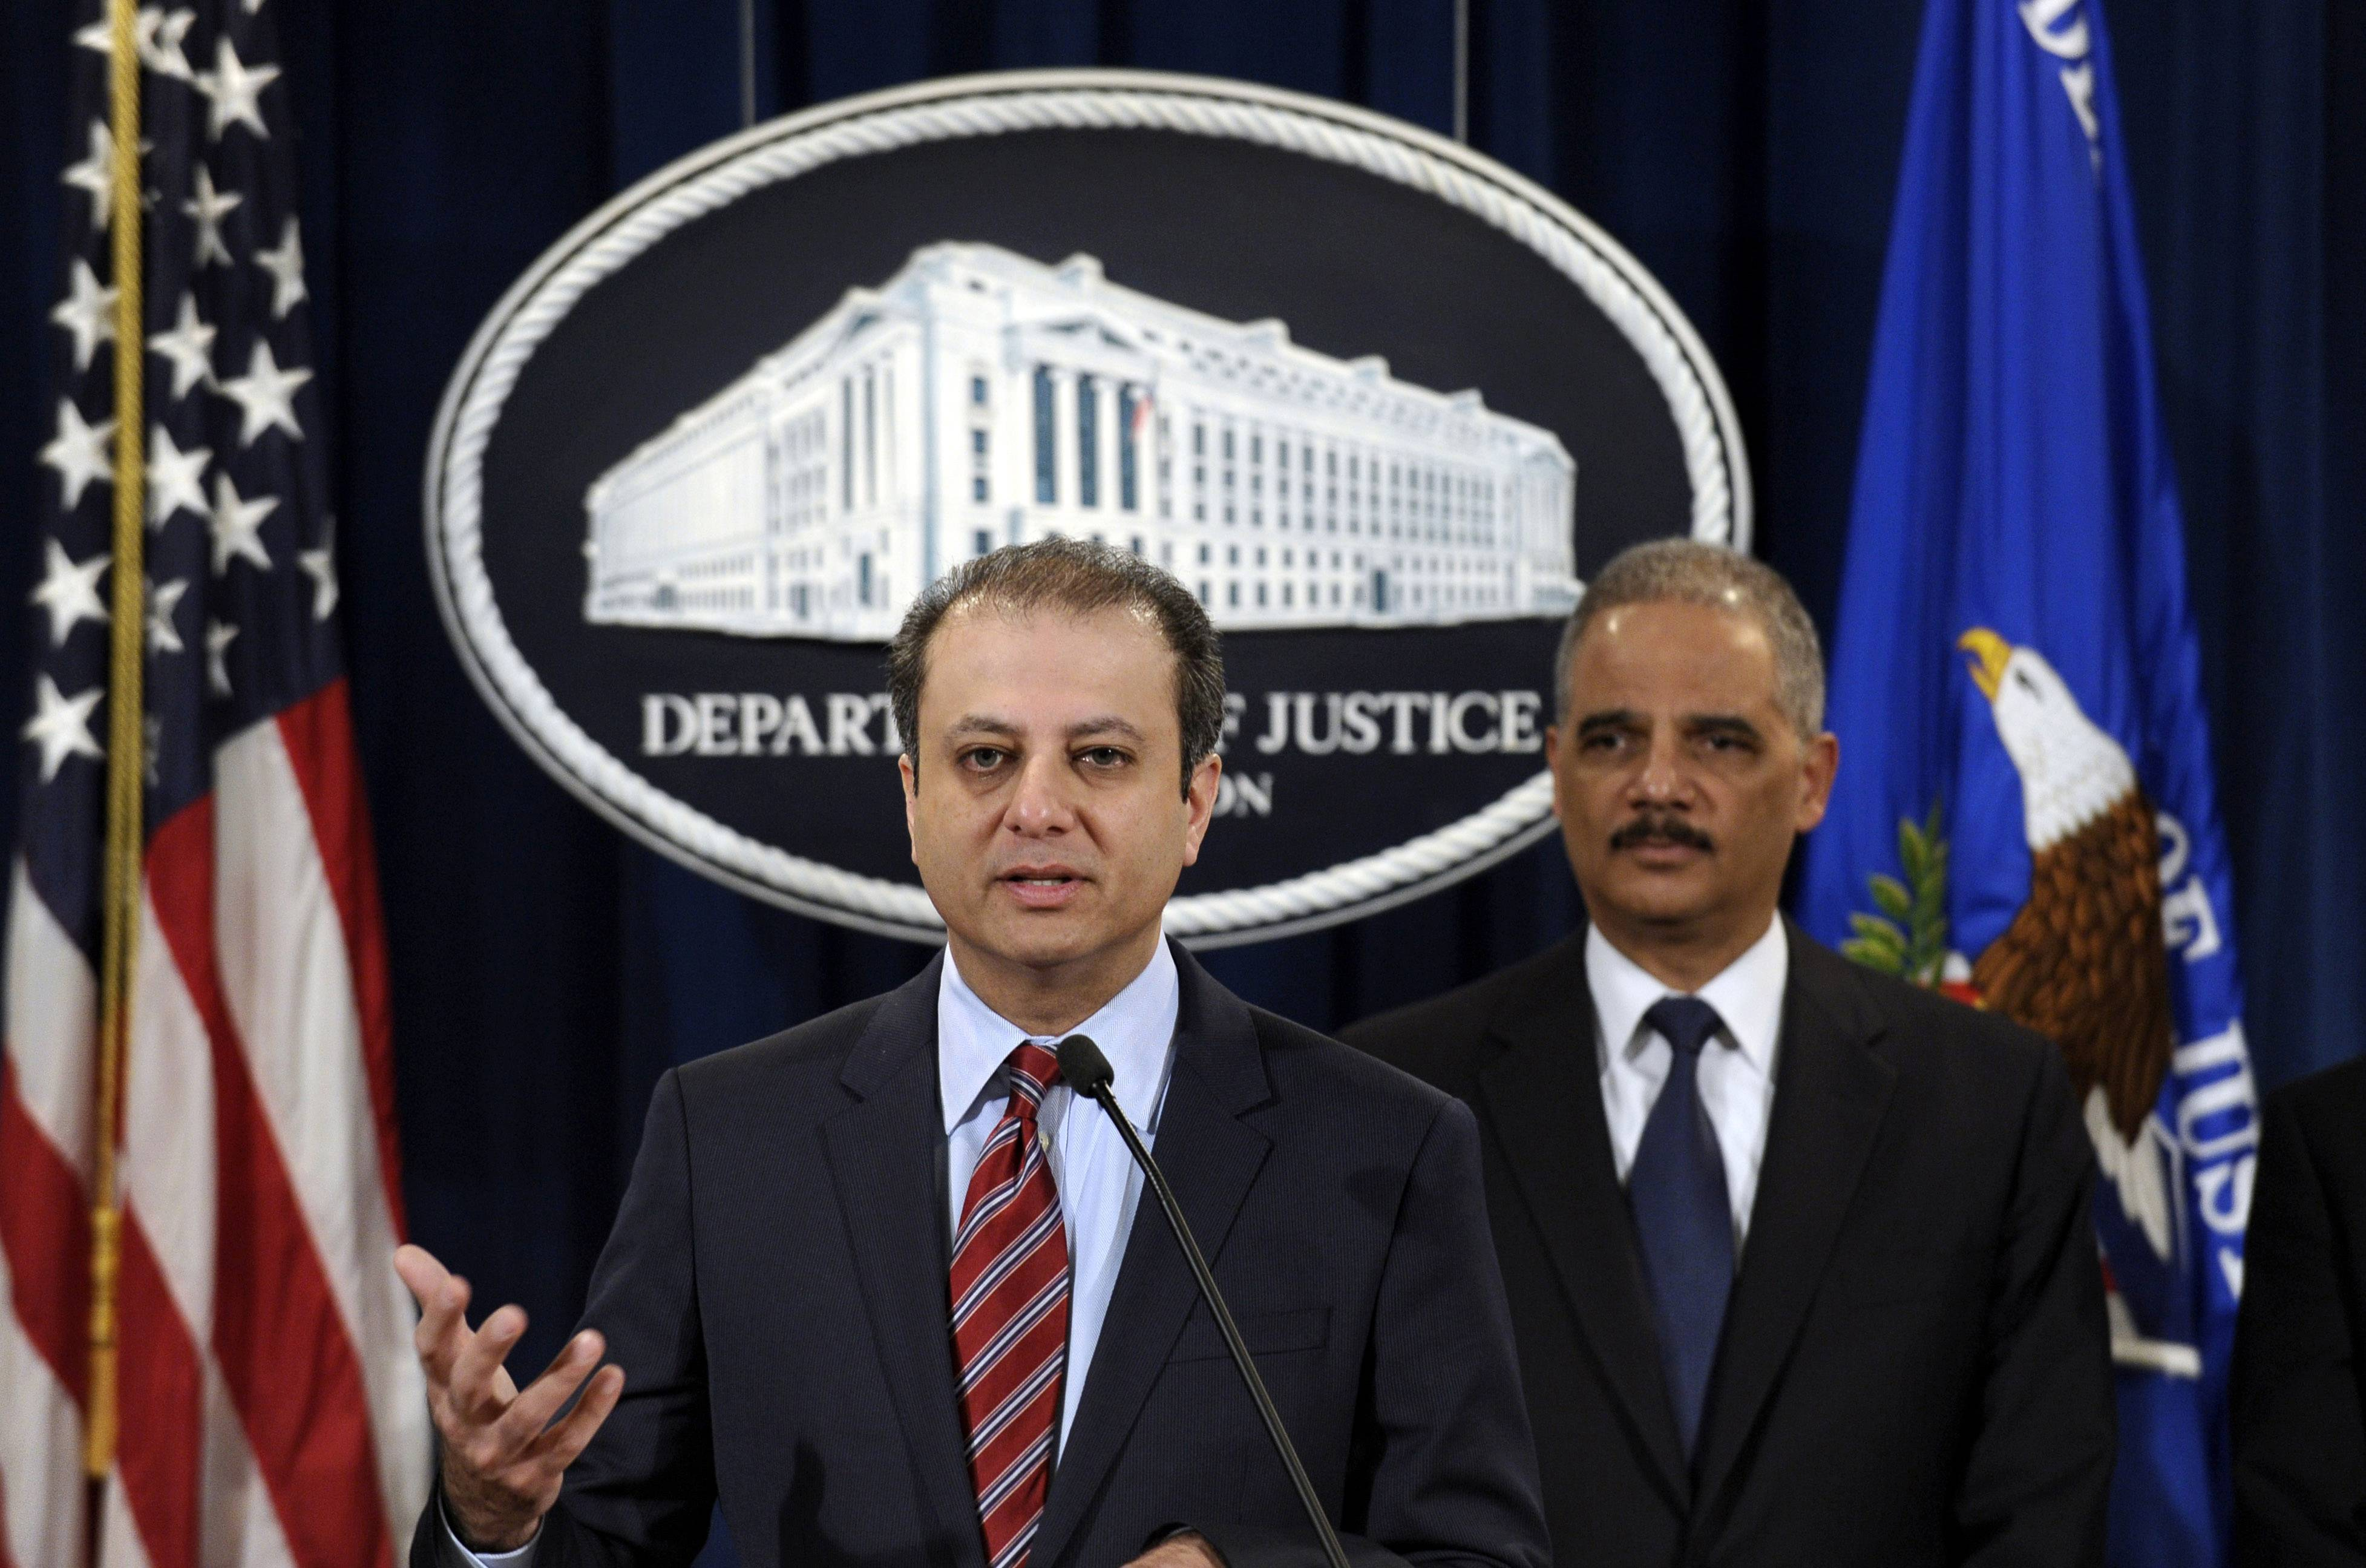 Attorney General Eric Holder, right, listens as U.S. Attorney for the Second District Preet Bharara talks about the $1.2 billion settlement with Toyota over its disclosure of safety problems during a news conference at the Justice Department in Washington.